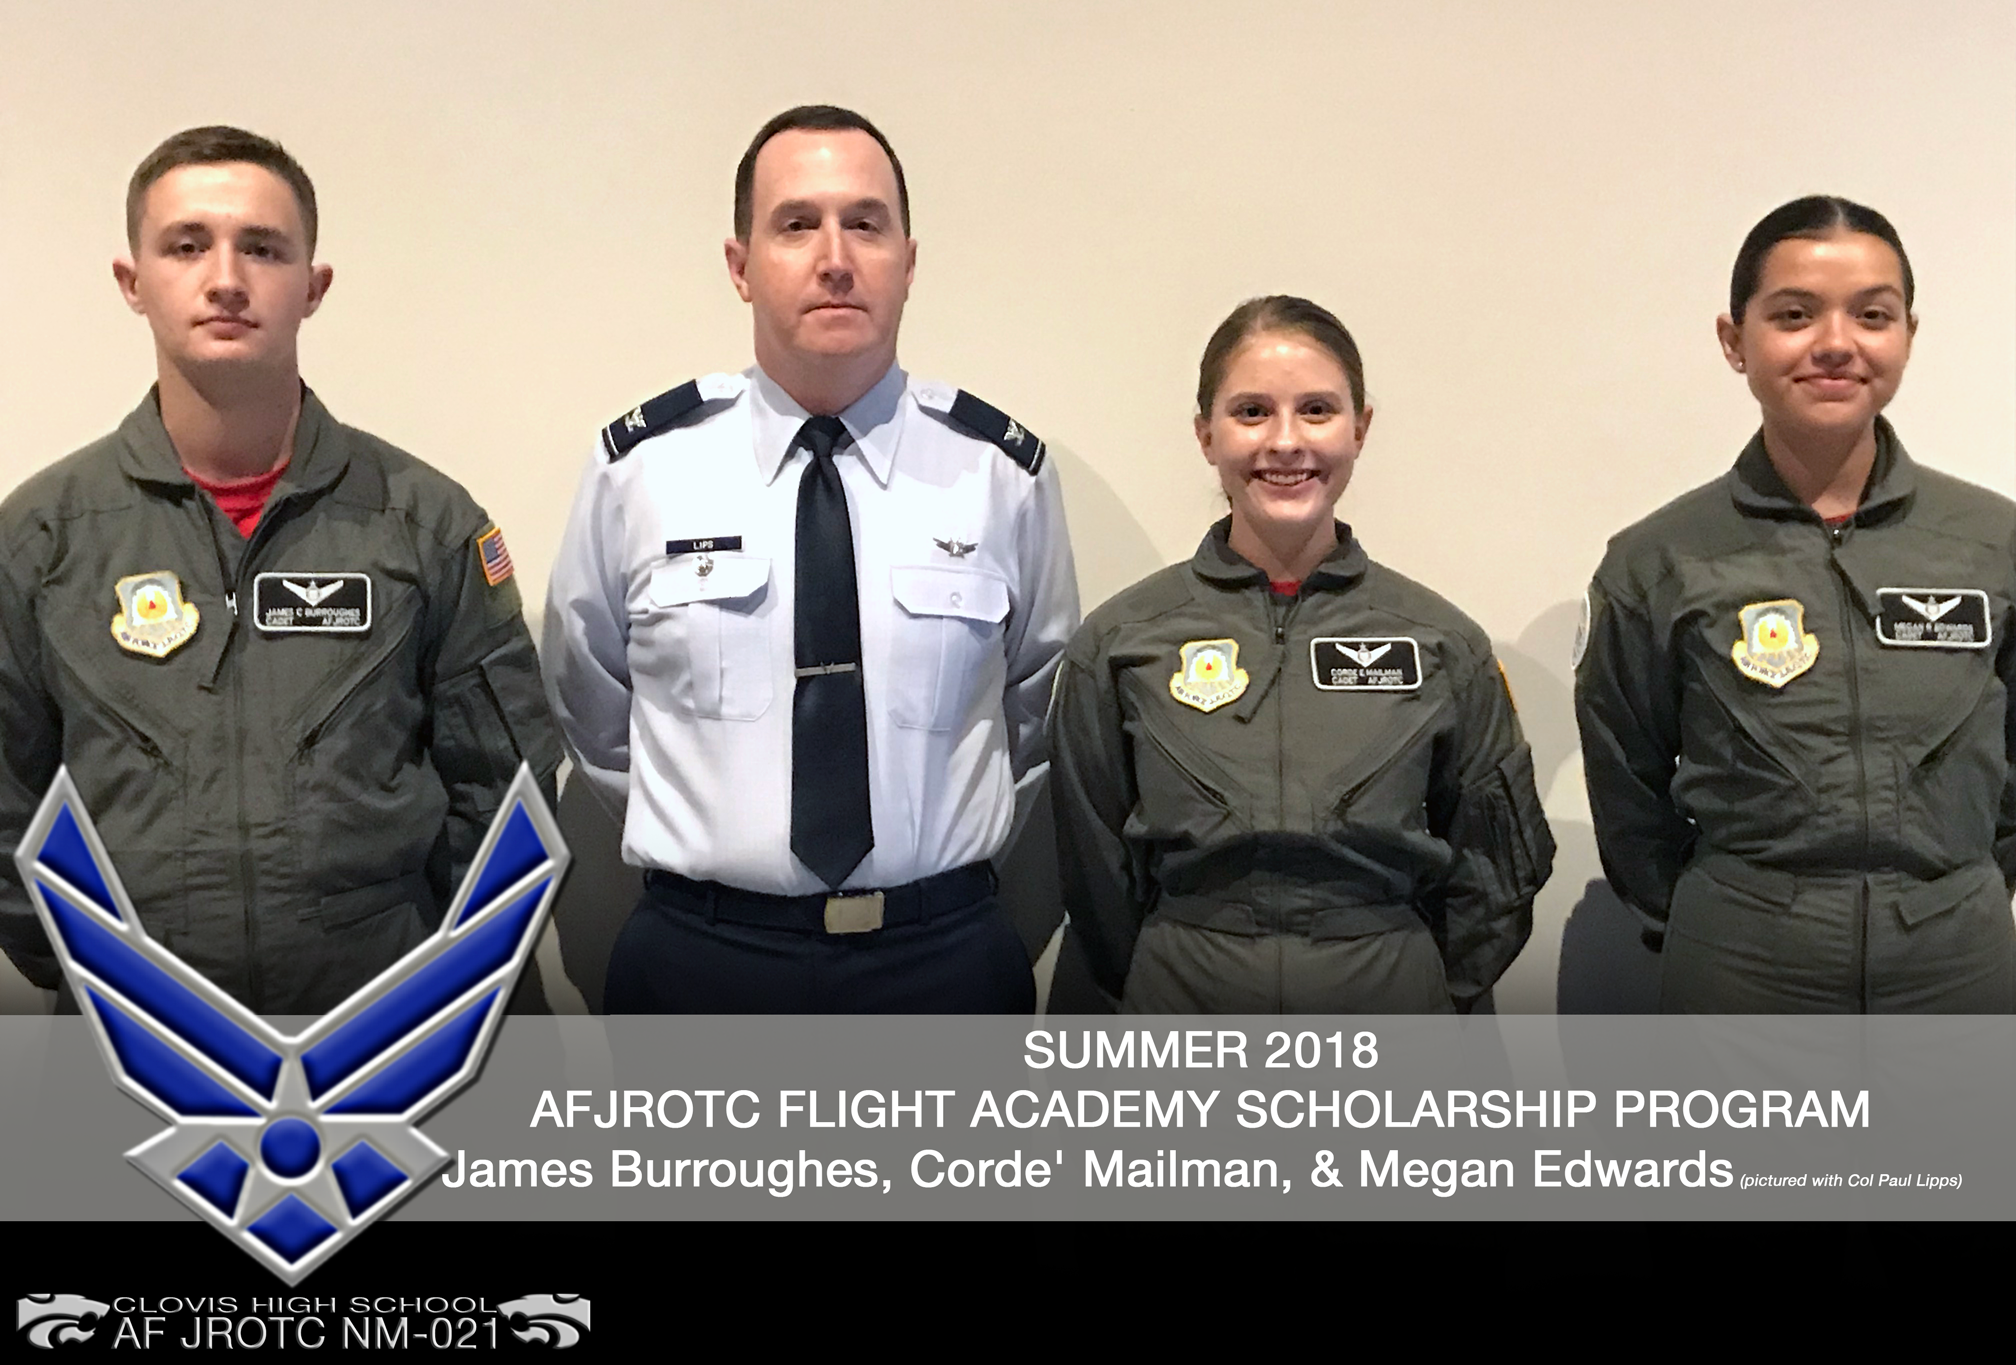 Image of recipients of Flight Academy Scholarship Program Recipients